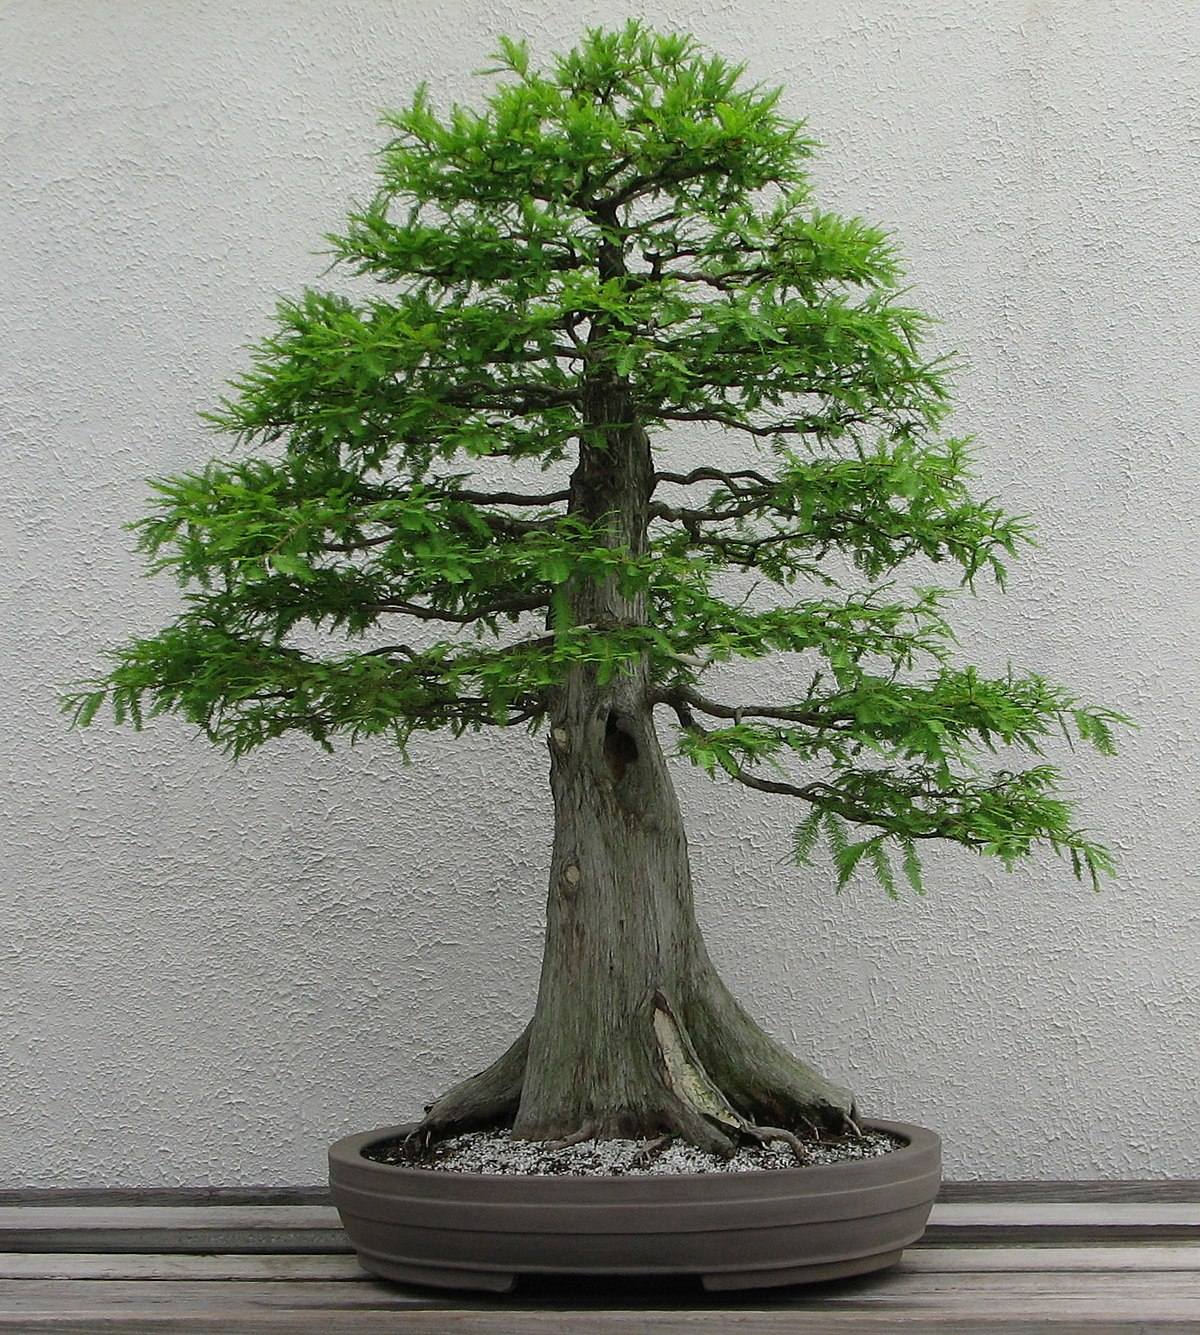 Bonsai Aesthetics Wikipedia